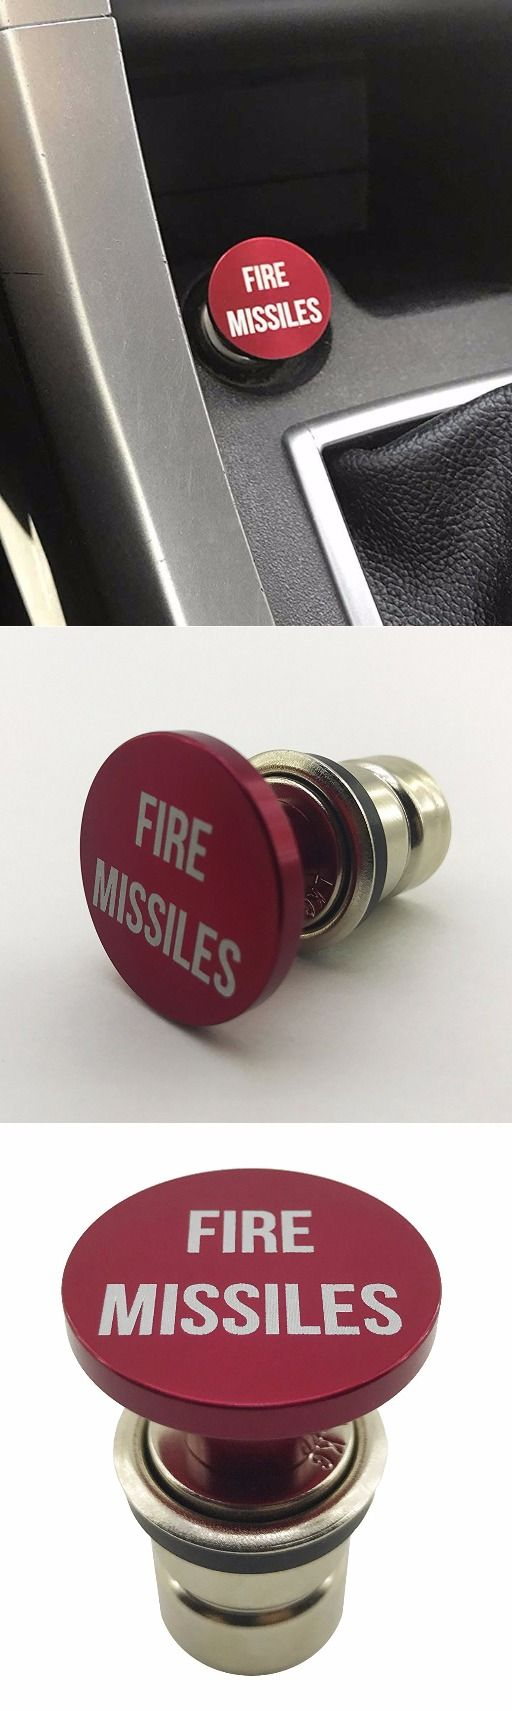 Fire Missiles Cigarette Lighter Button @thistookmymoney